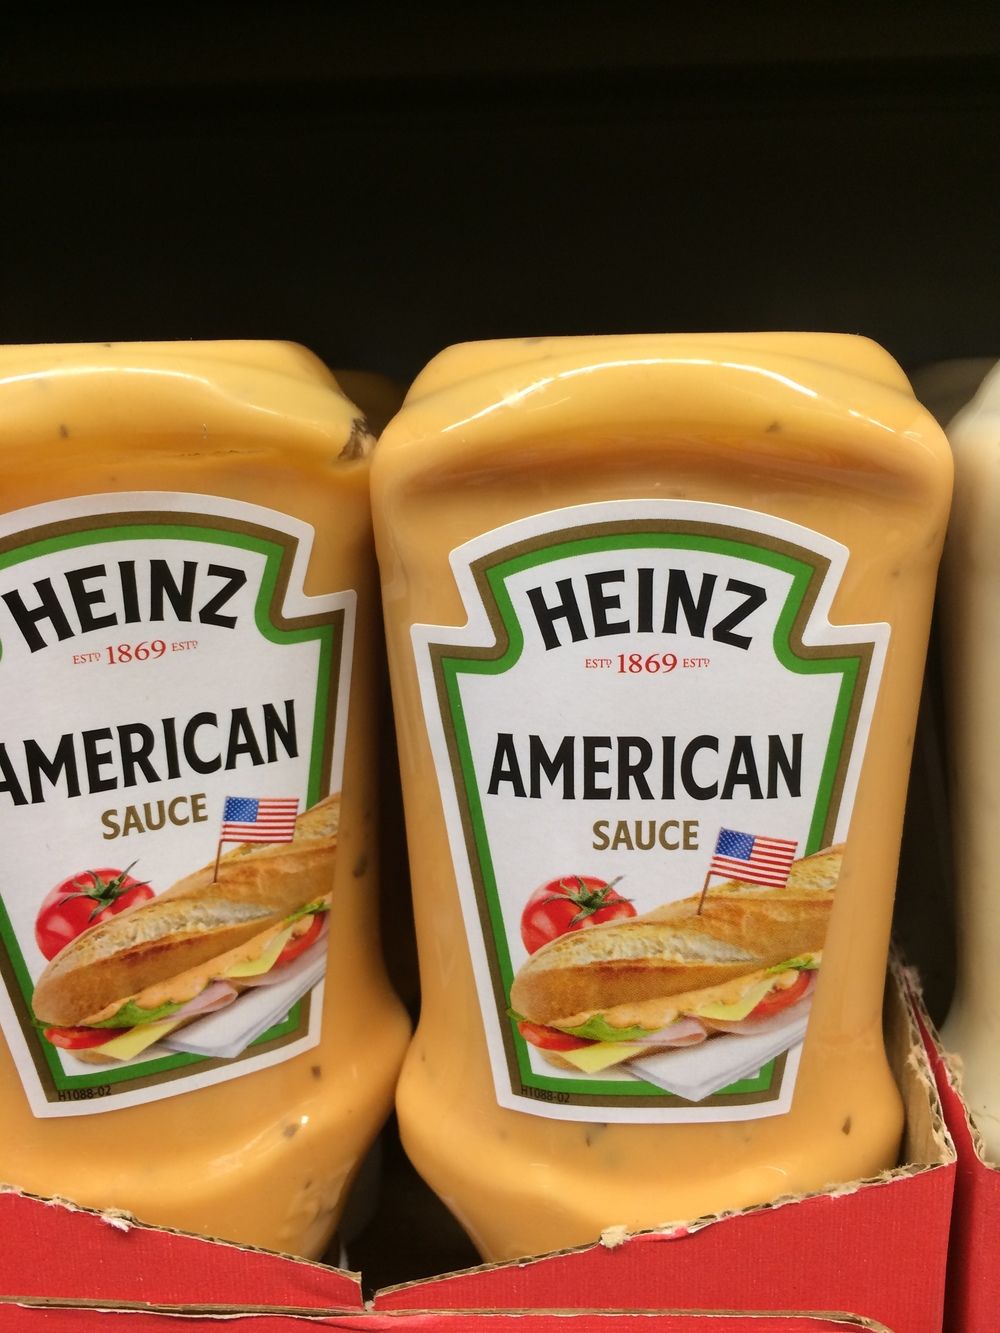 The American Sauce